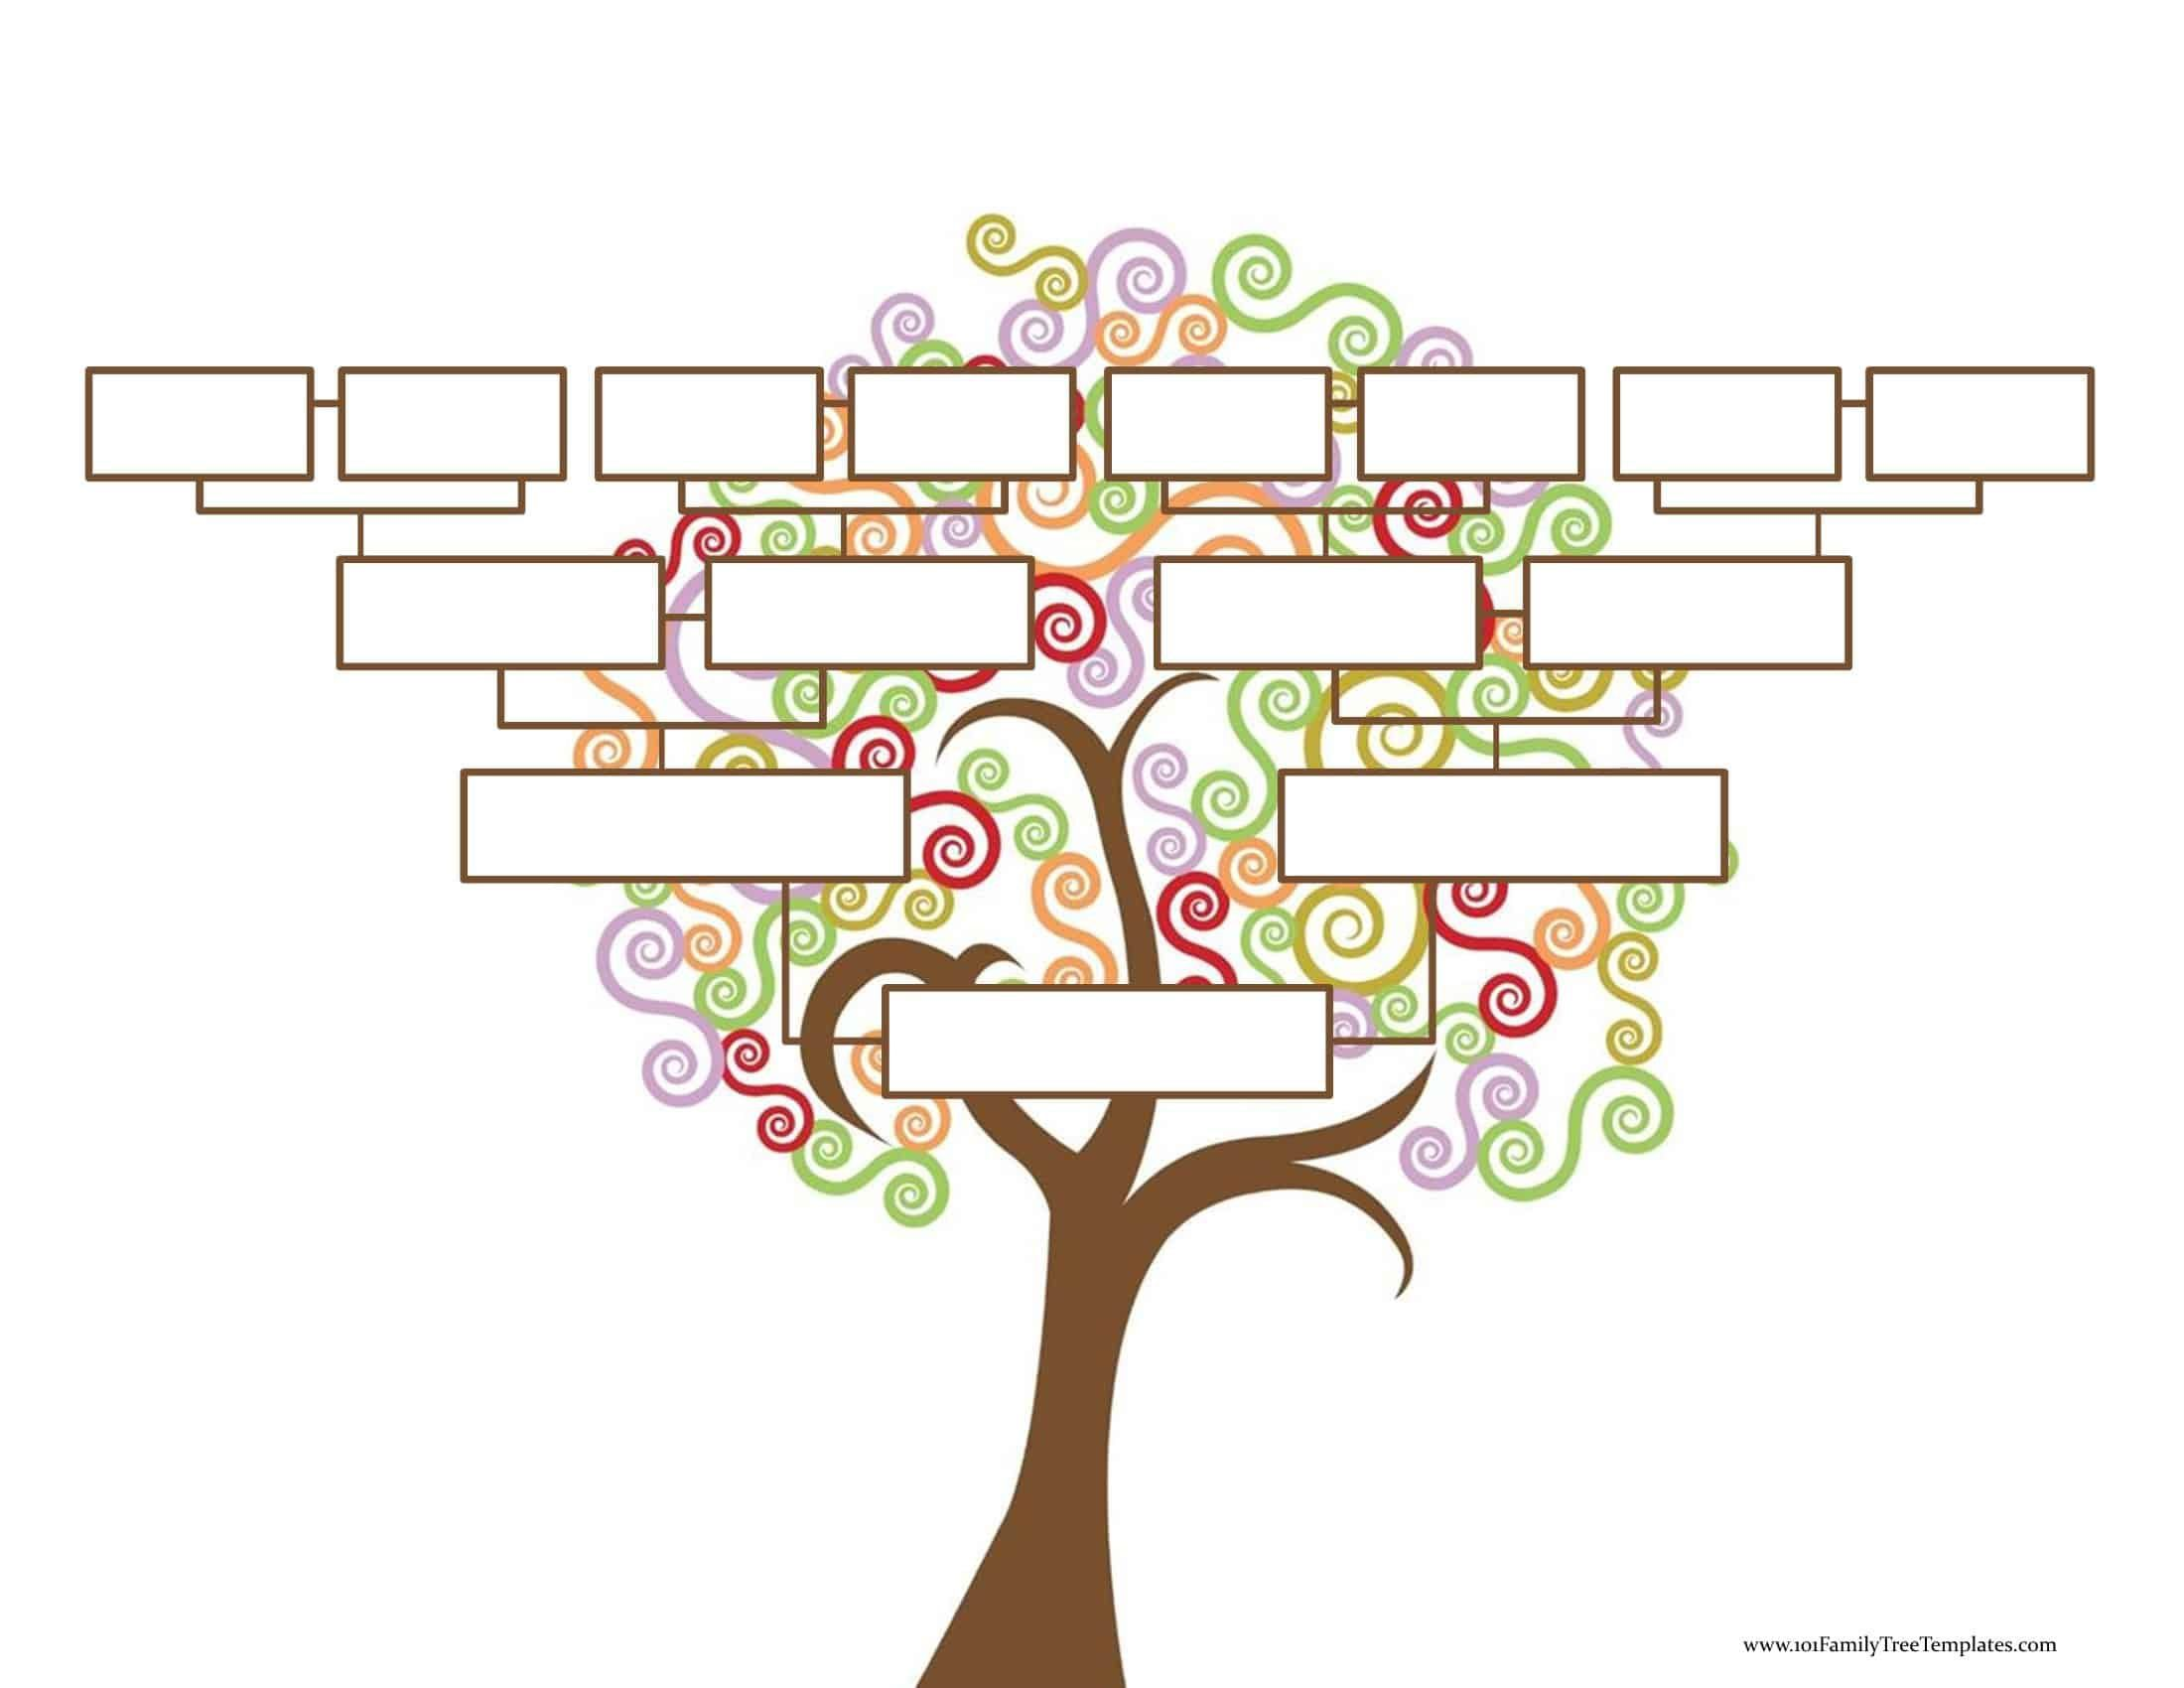 010 Shocking Editable Family Tree Template Online Free High Resolution Full